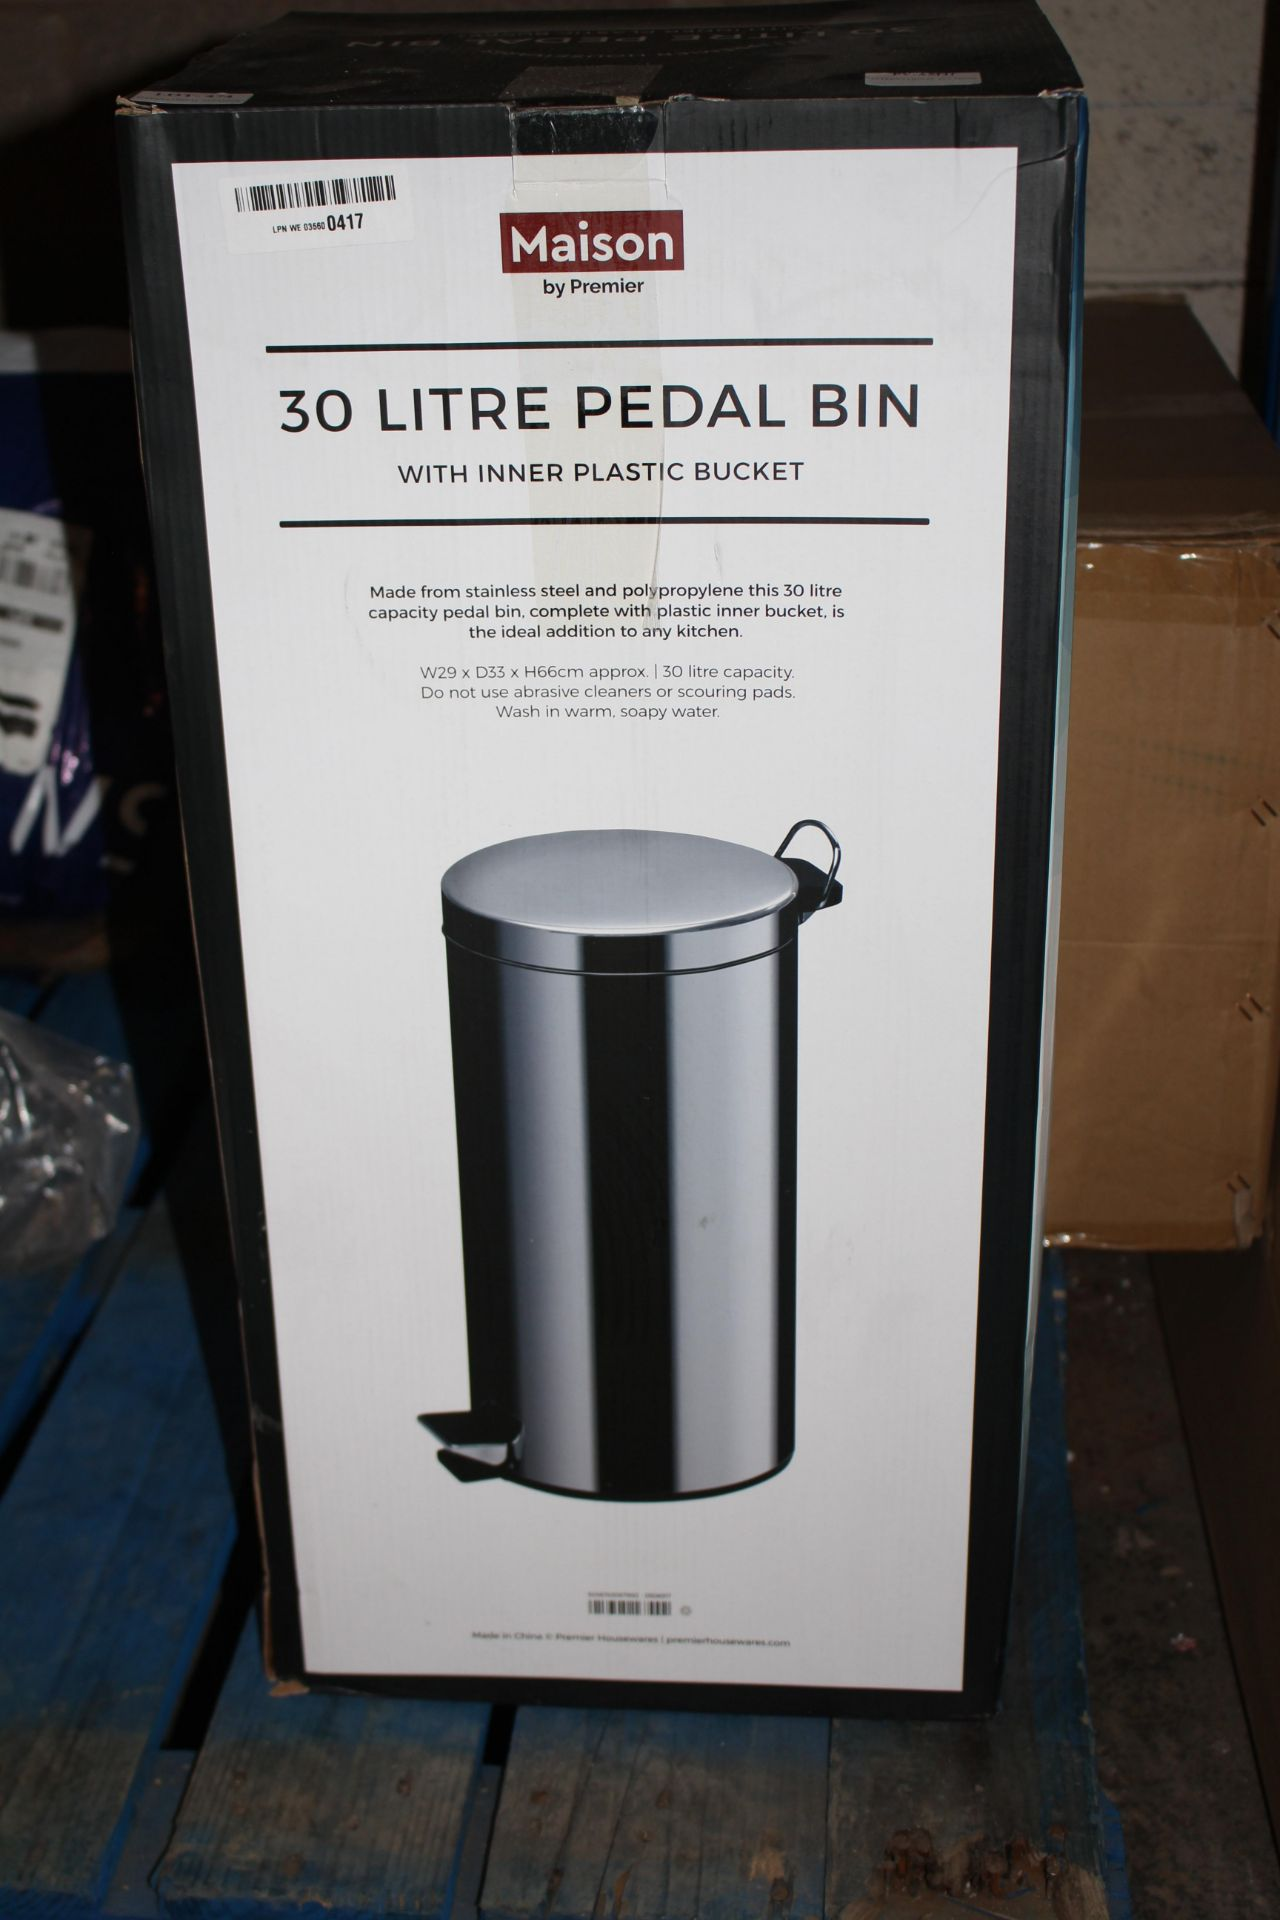 BOXED MAISON 30 LITRE PEDAL BIMN Condition ReportAppraisal Available on Request- All Items are